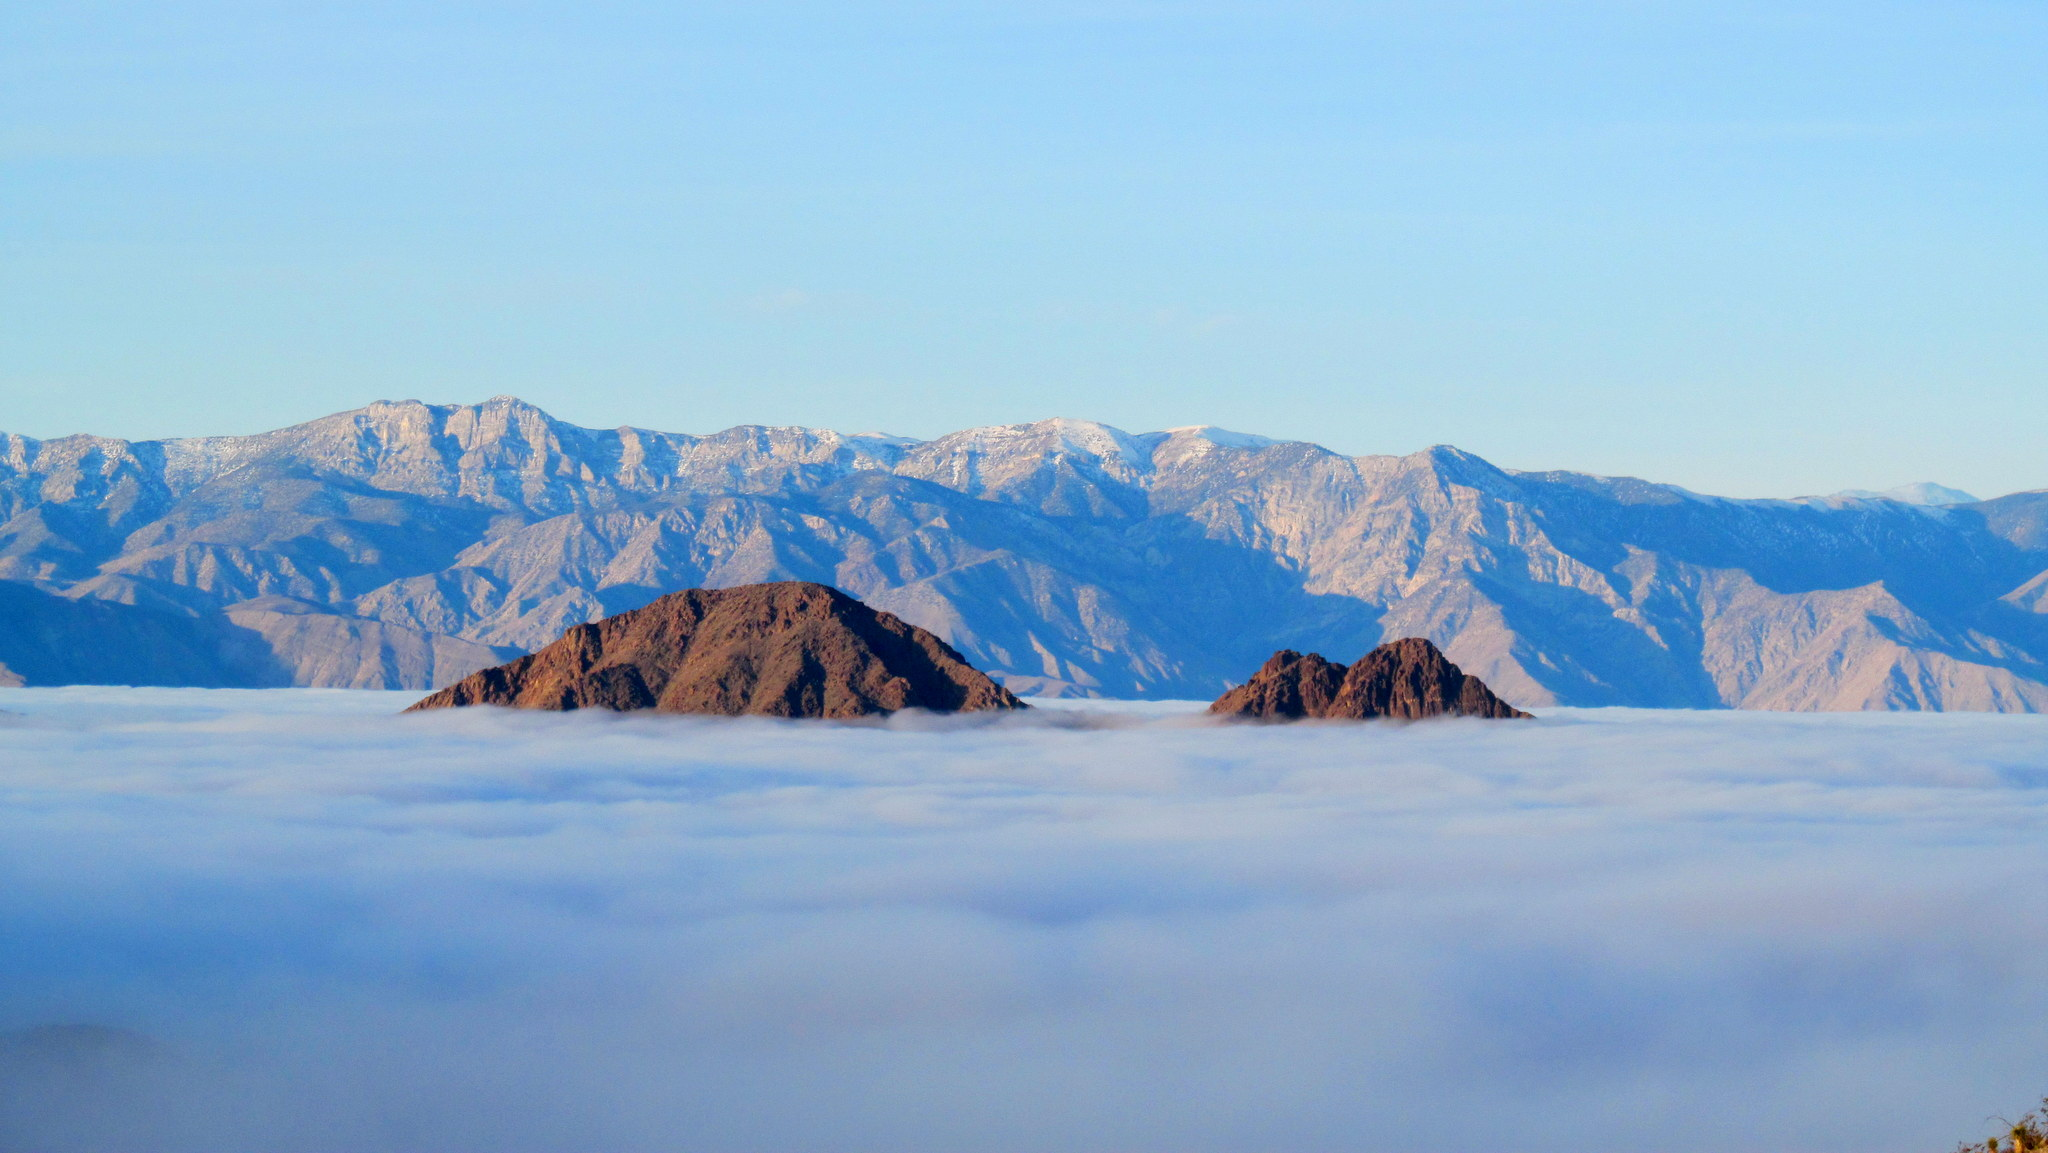 Photo: Ubehebe Peak (left foreground) peeking out of the fog